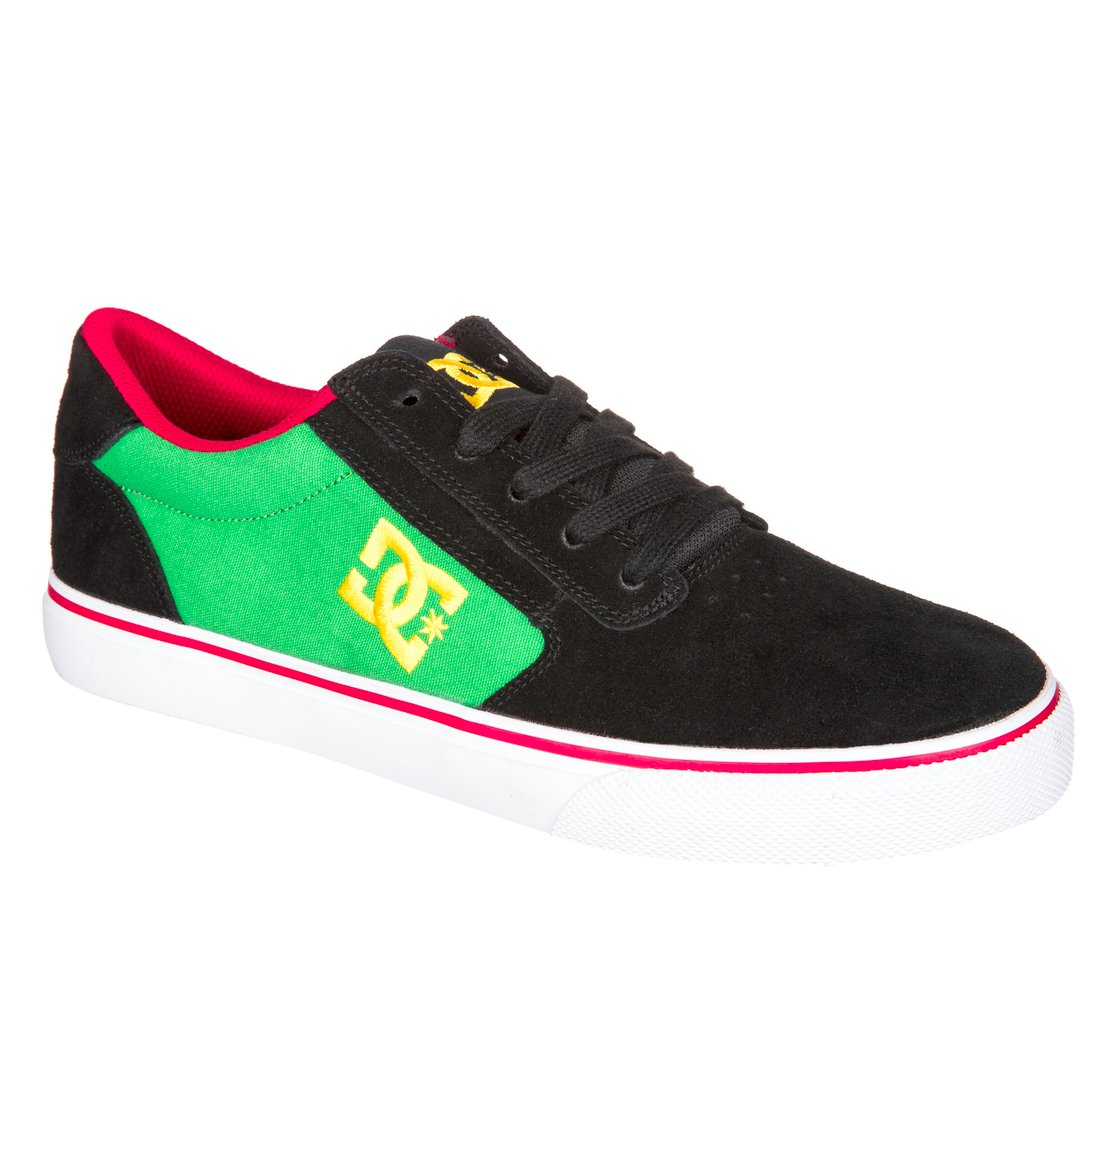 Tremendous Mens Gatsby 2 Shoes 303017 Dc Shoes Hairstyle Inspiration Daily Dogsangcom